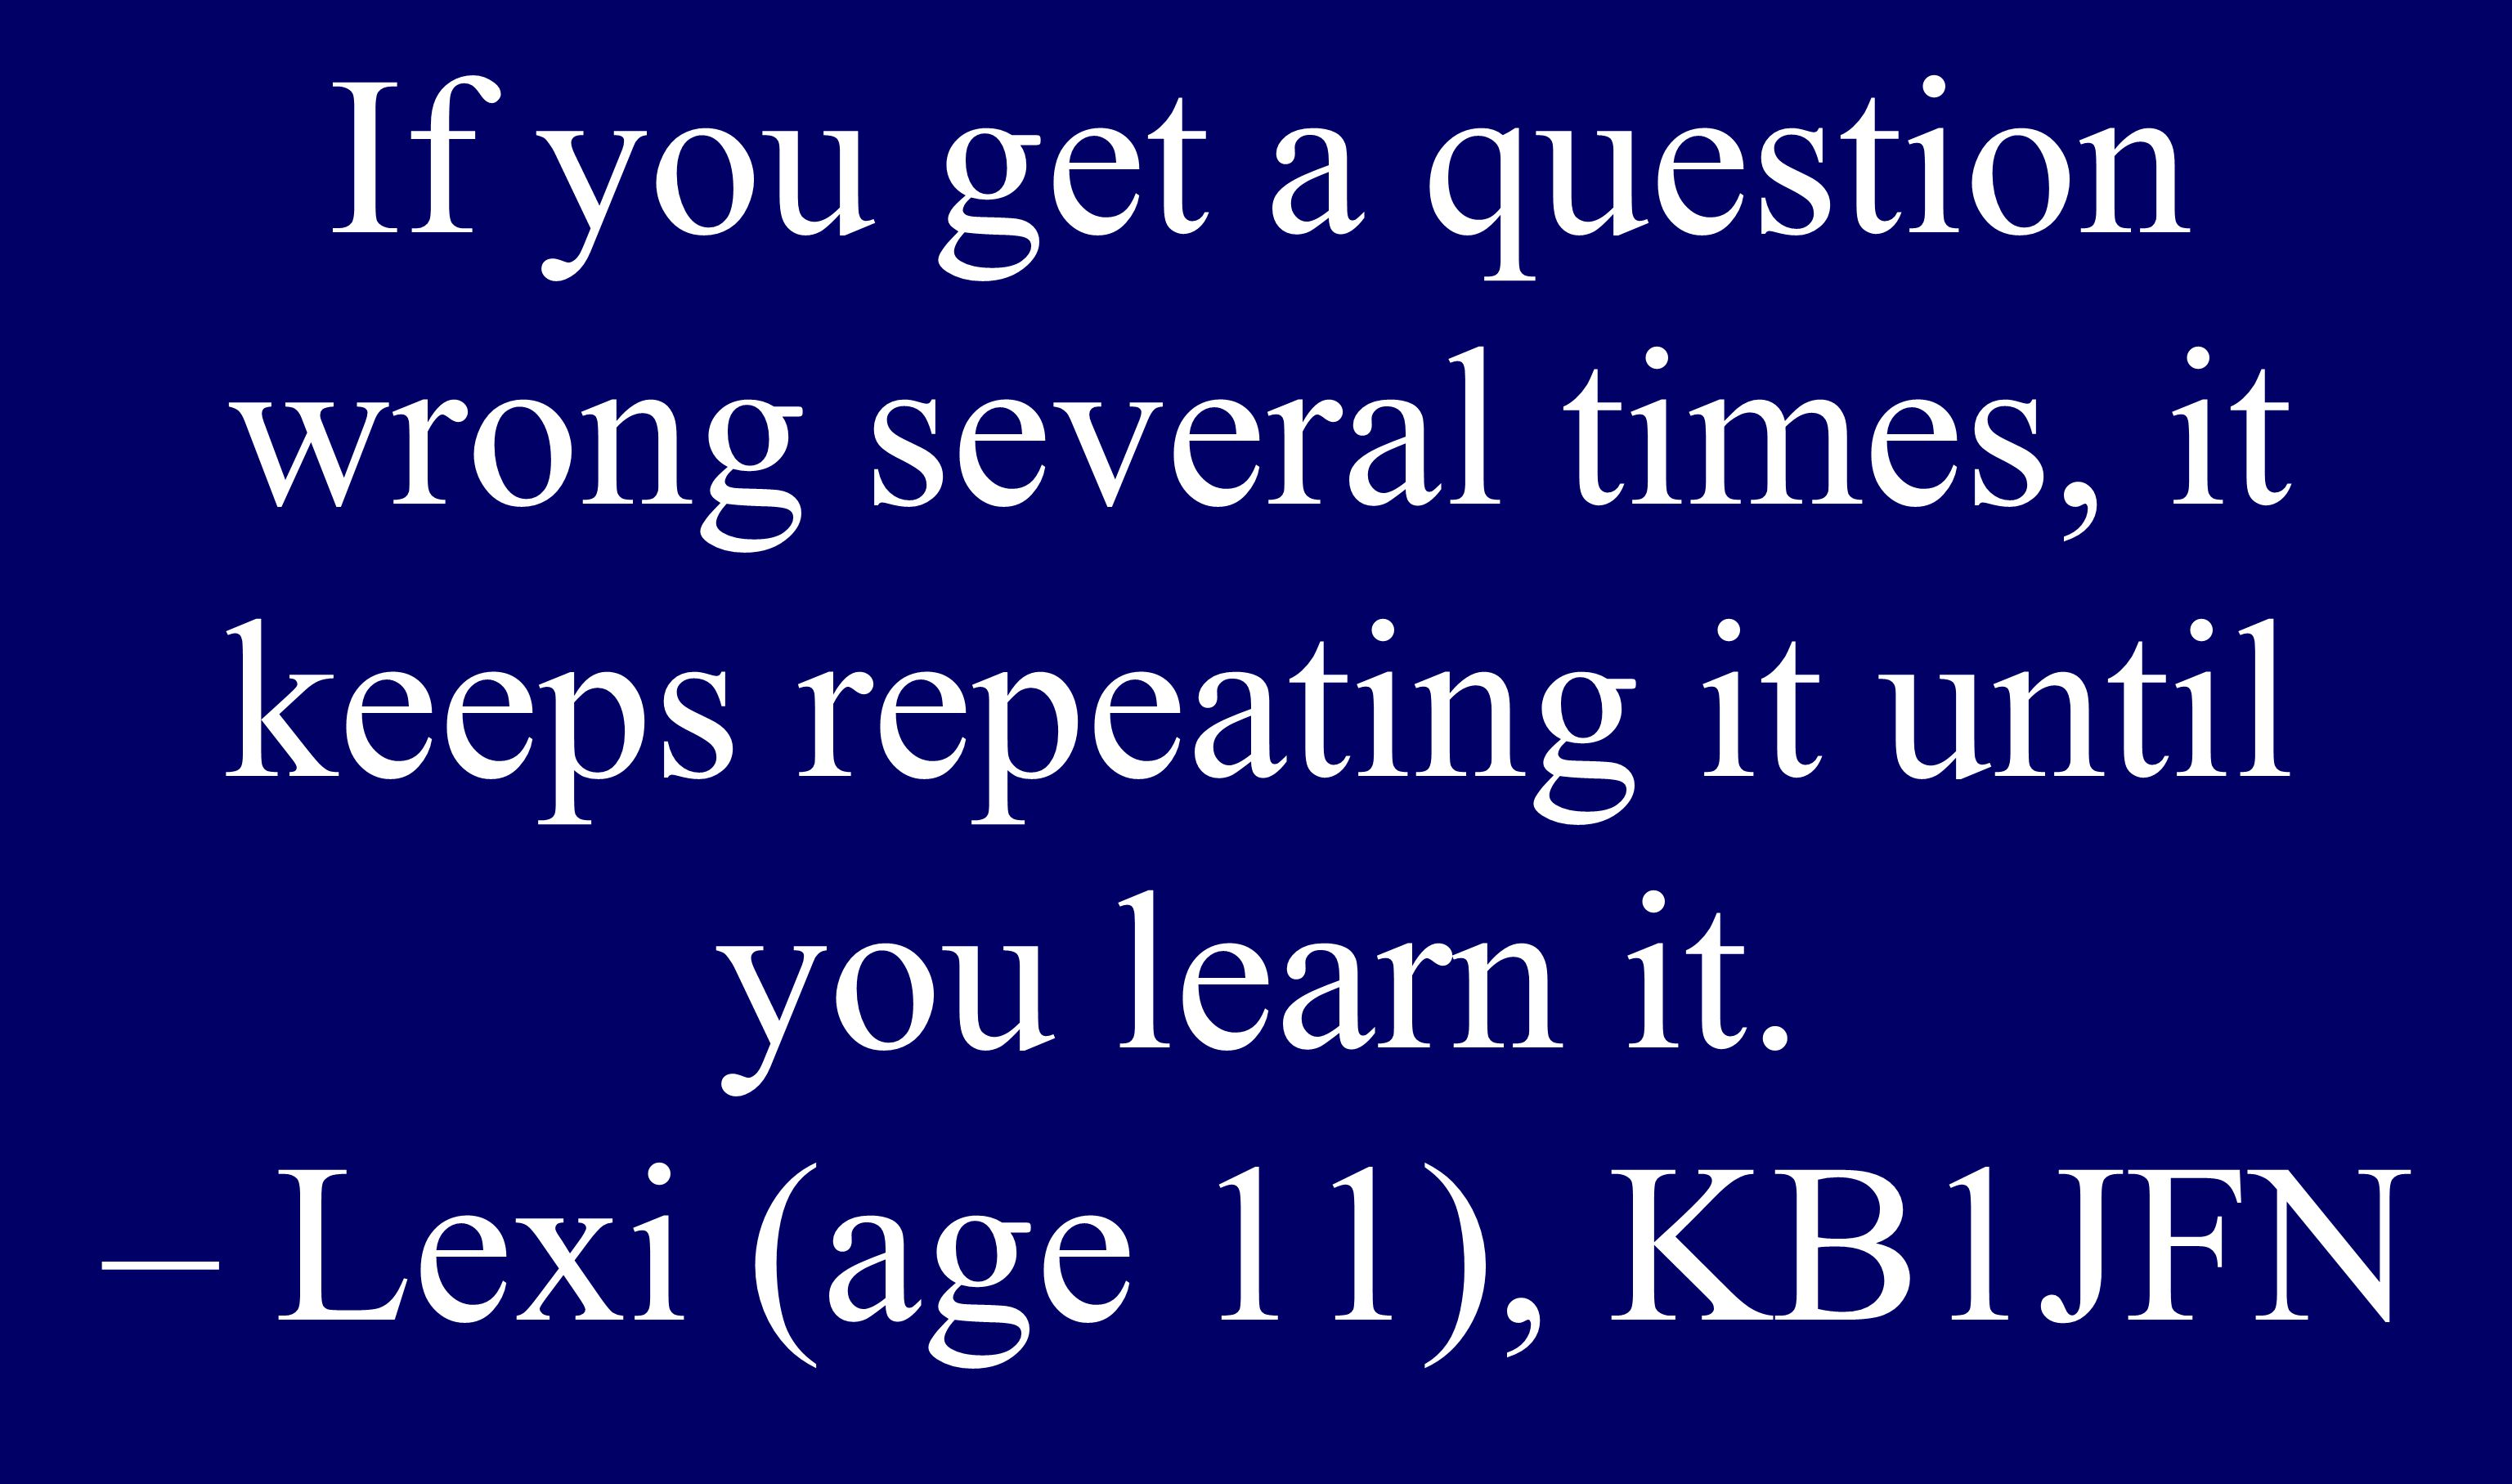 If you get a question wrong several times, it keeps repeating it until you learn it. – Lexi (age 11), KB1JFN